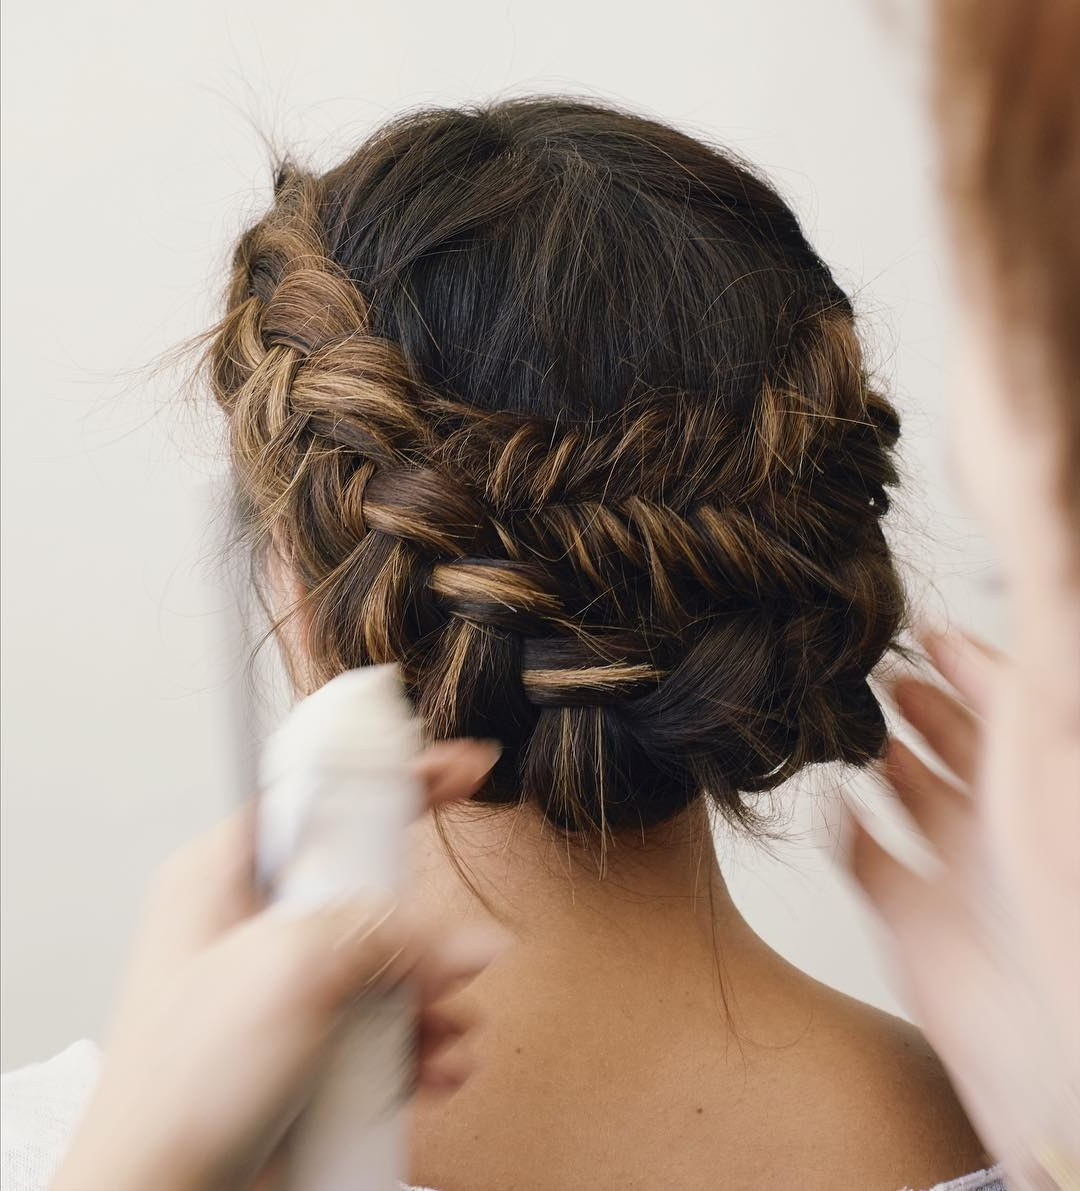 Best And Newest Sleek And Voluminous Beehive Bridal Hairstyles Pertaining To 61 Braided Wedding Hairstyles (View 2 of 20)